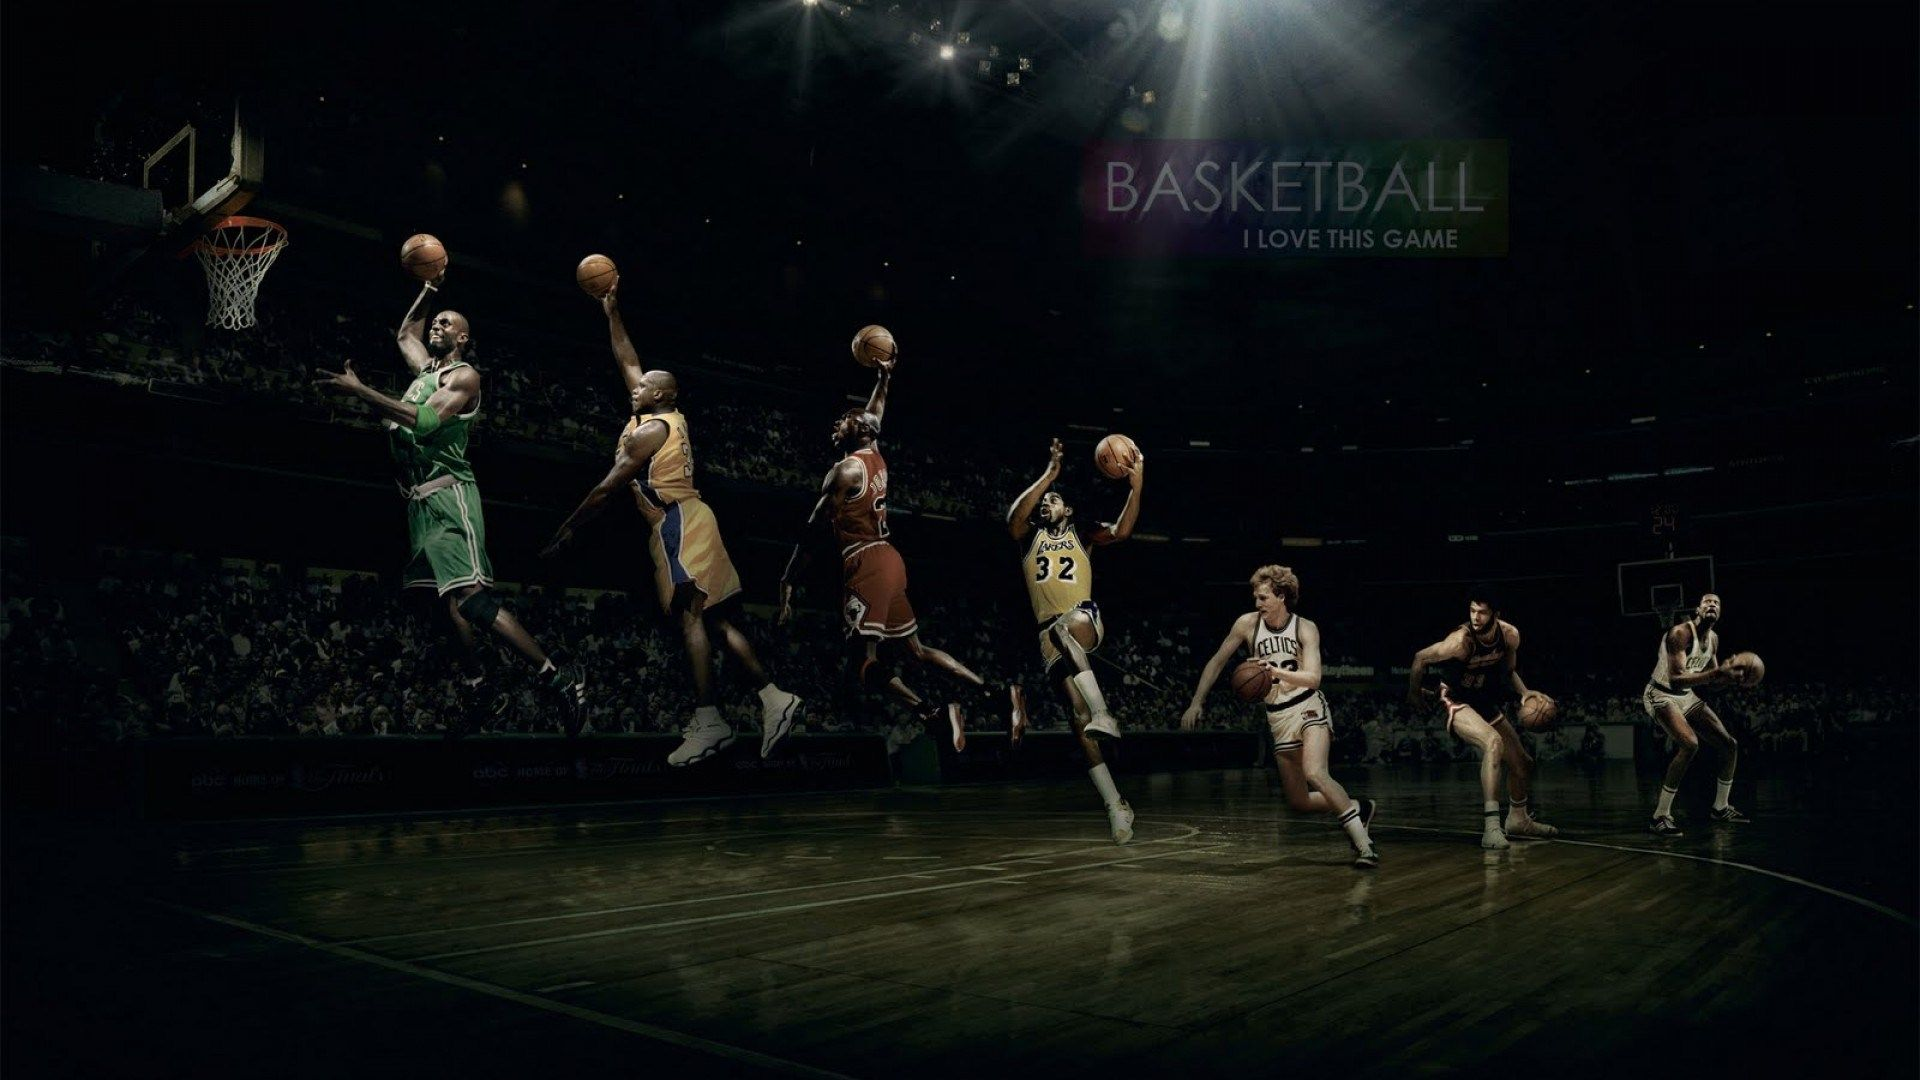 basketball iphone wallpaper hd for desktop background archived in sports category